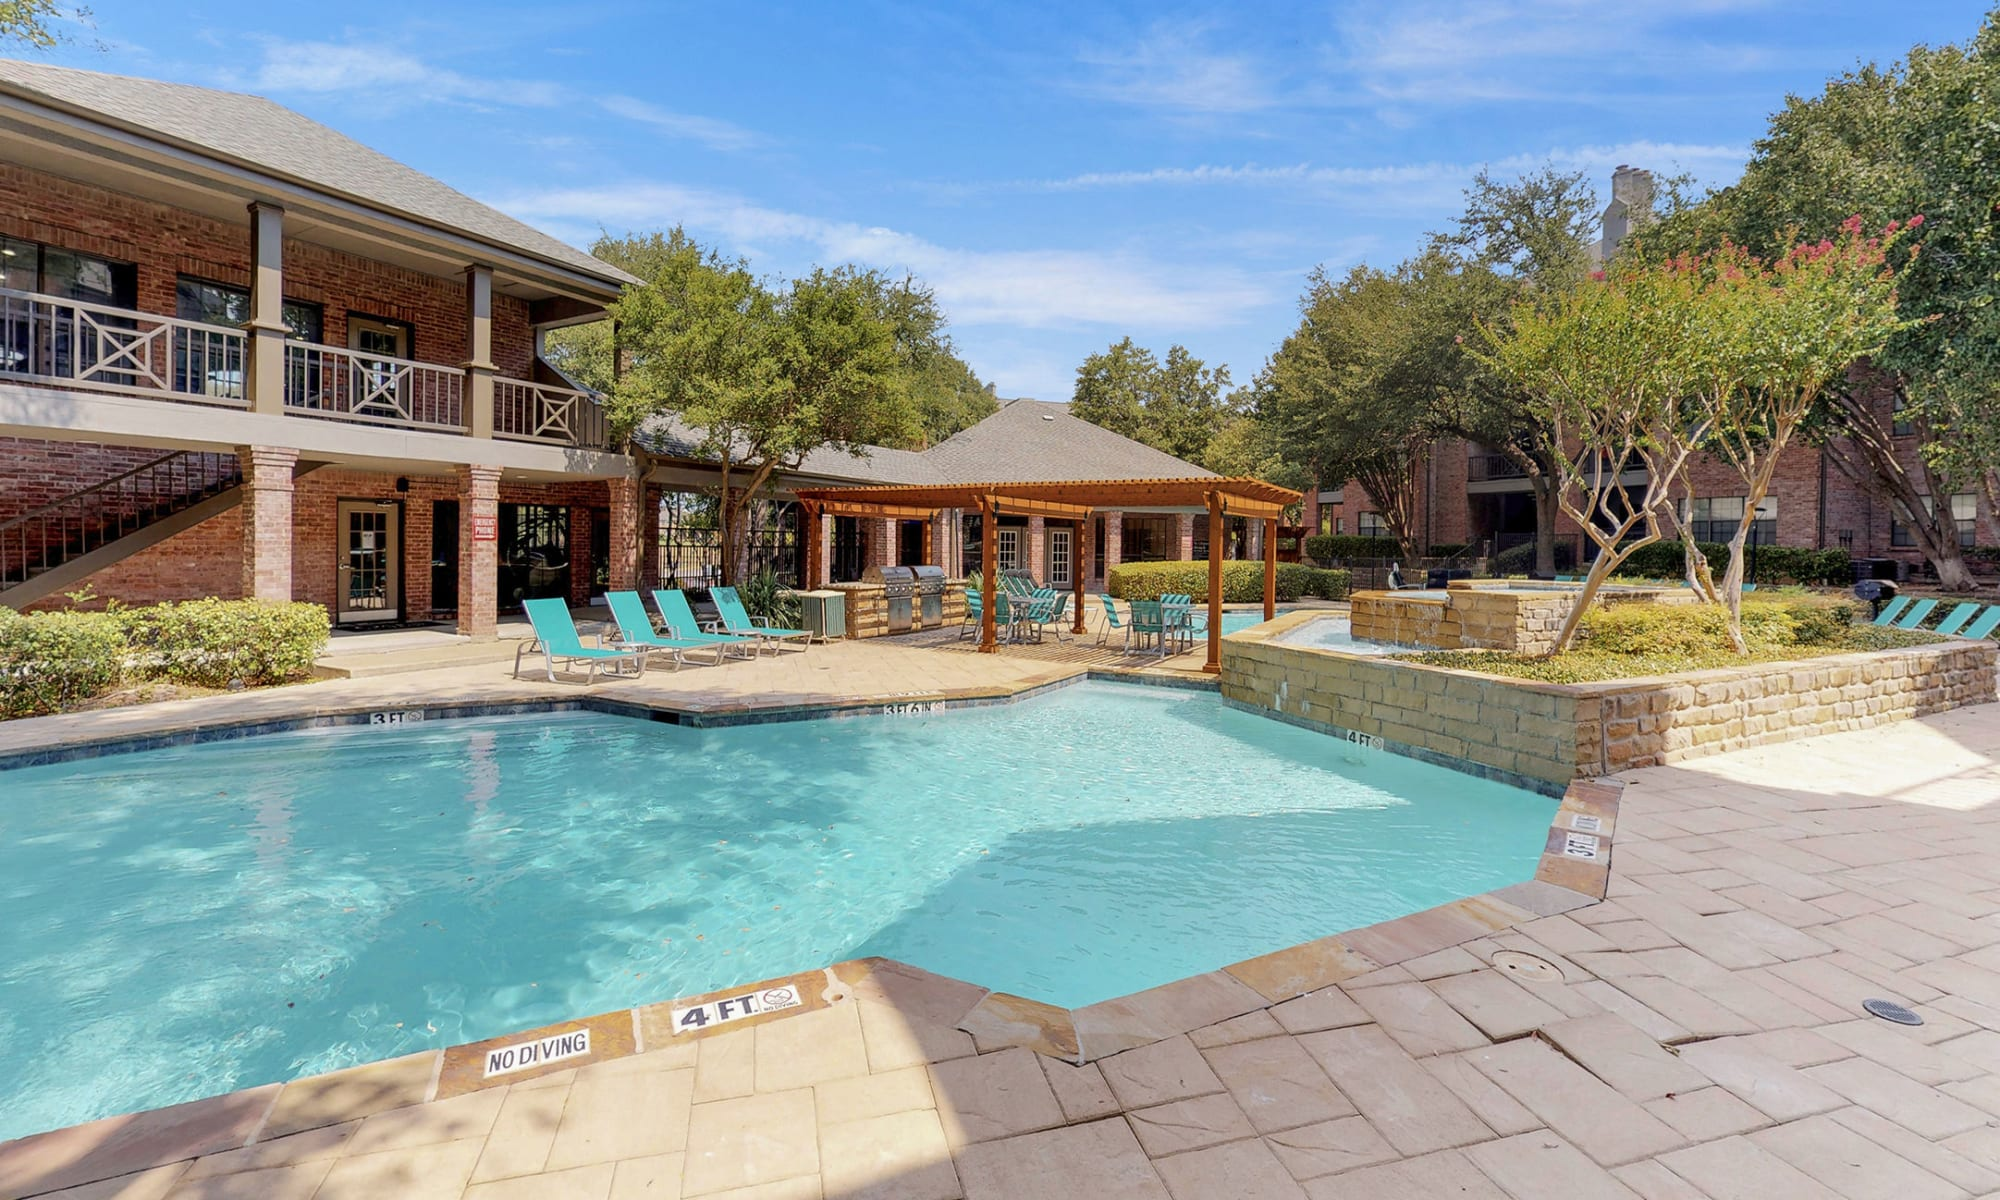 Apartments at Oaks Hackberry Creek in Irving, Texas